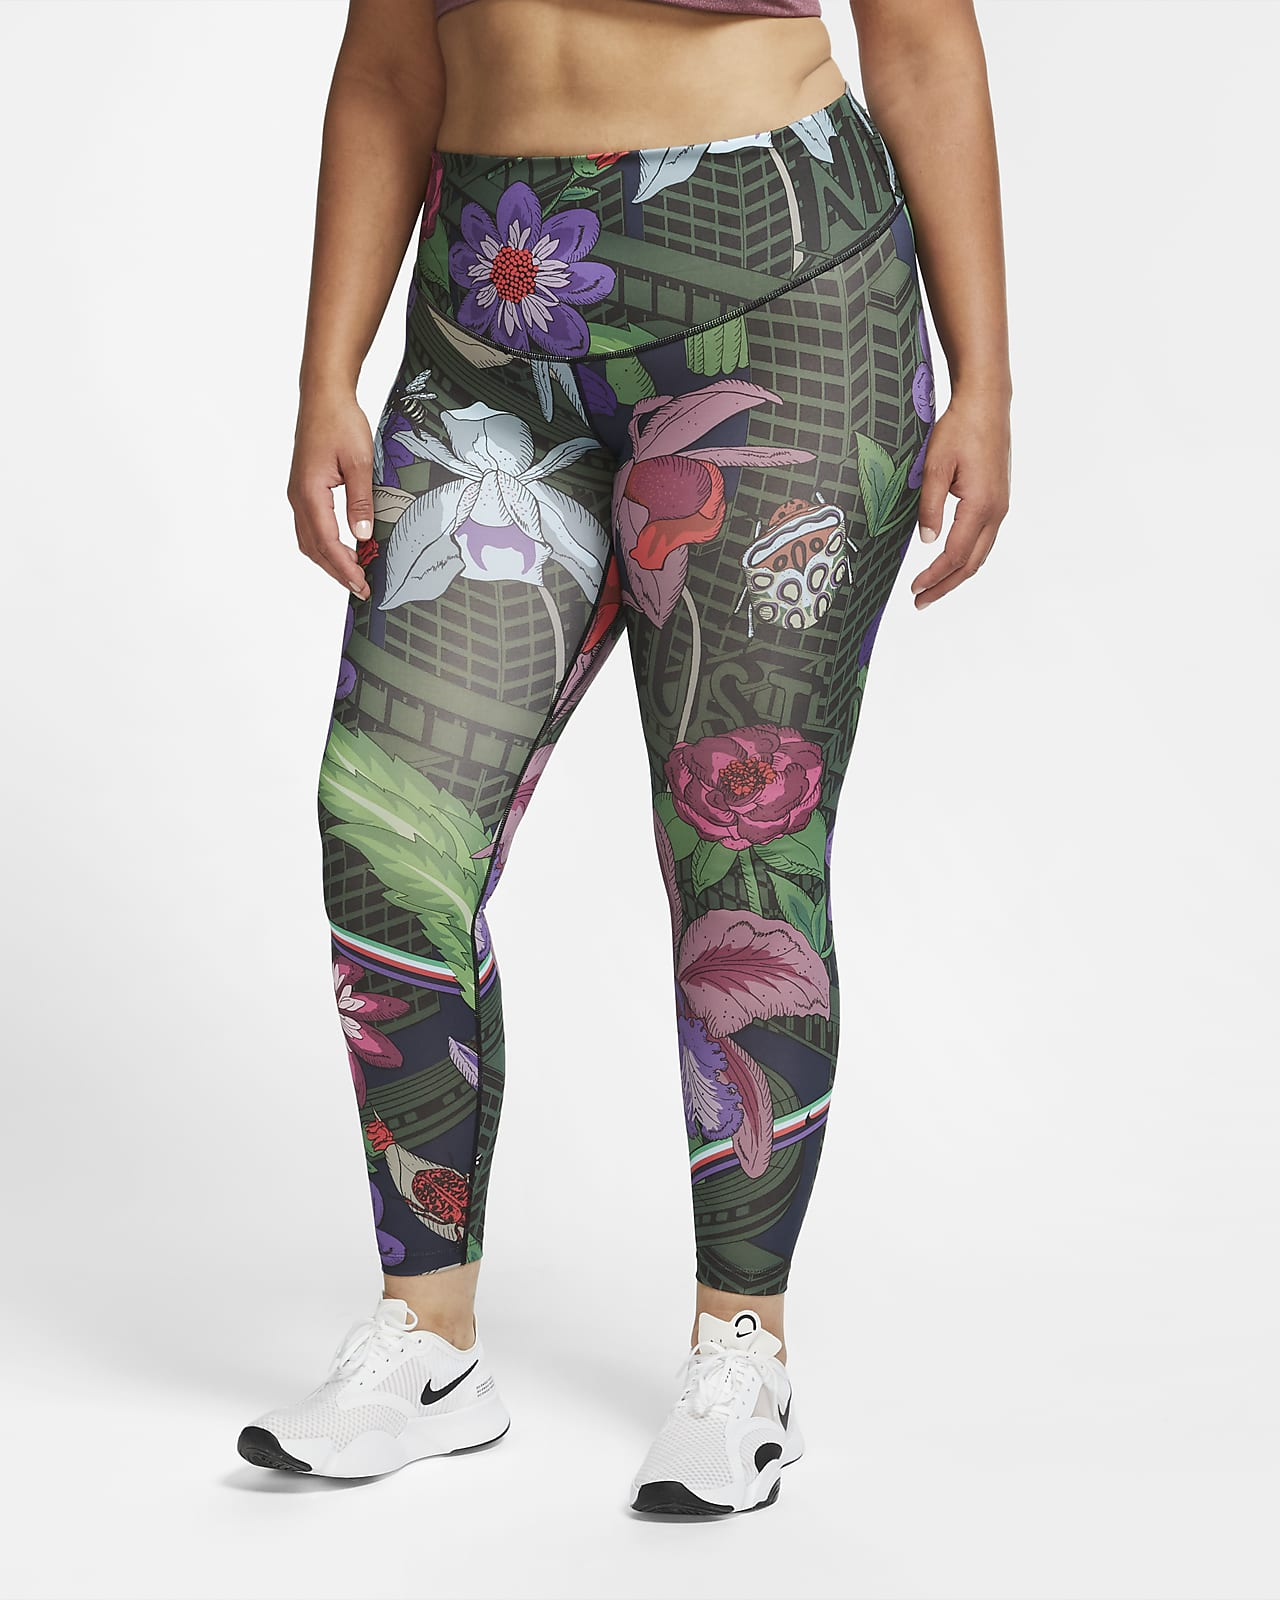 Nike One Icon Clash Women's Printed Leggings (Plus size)